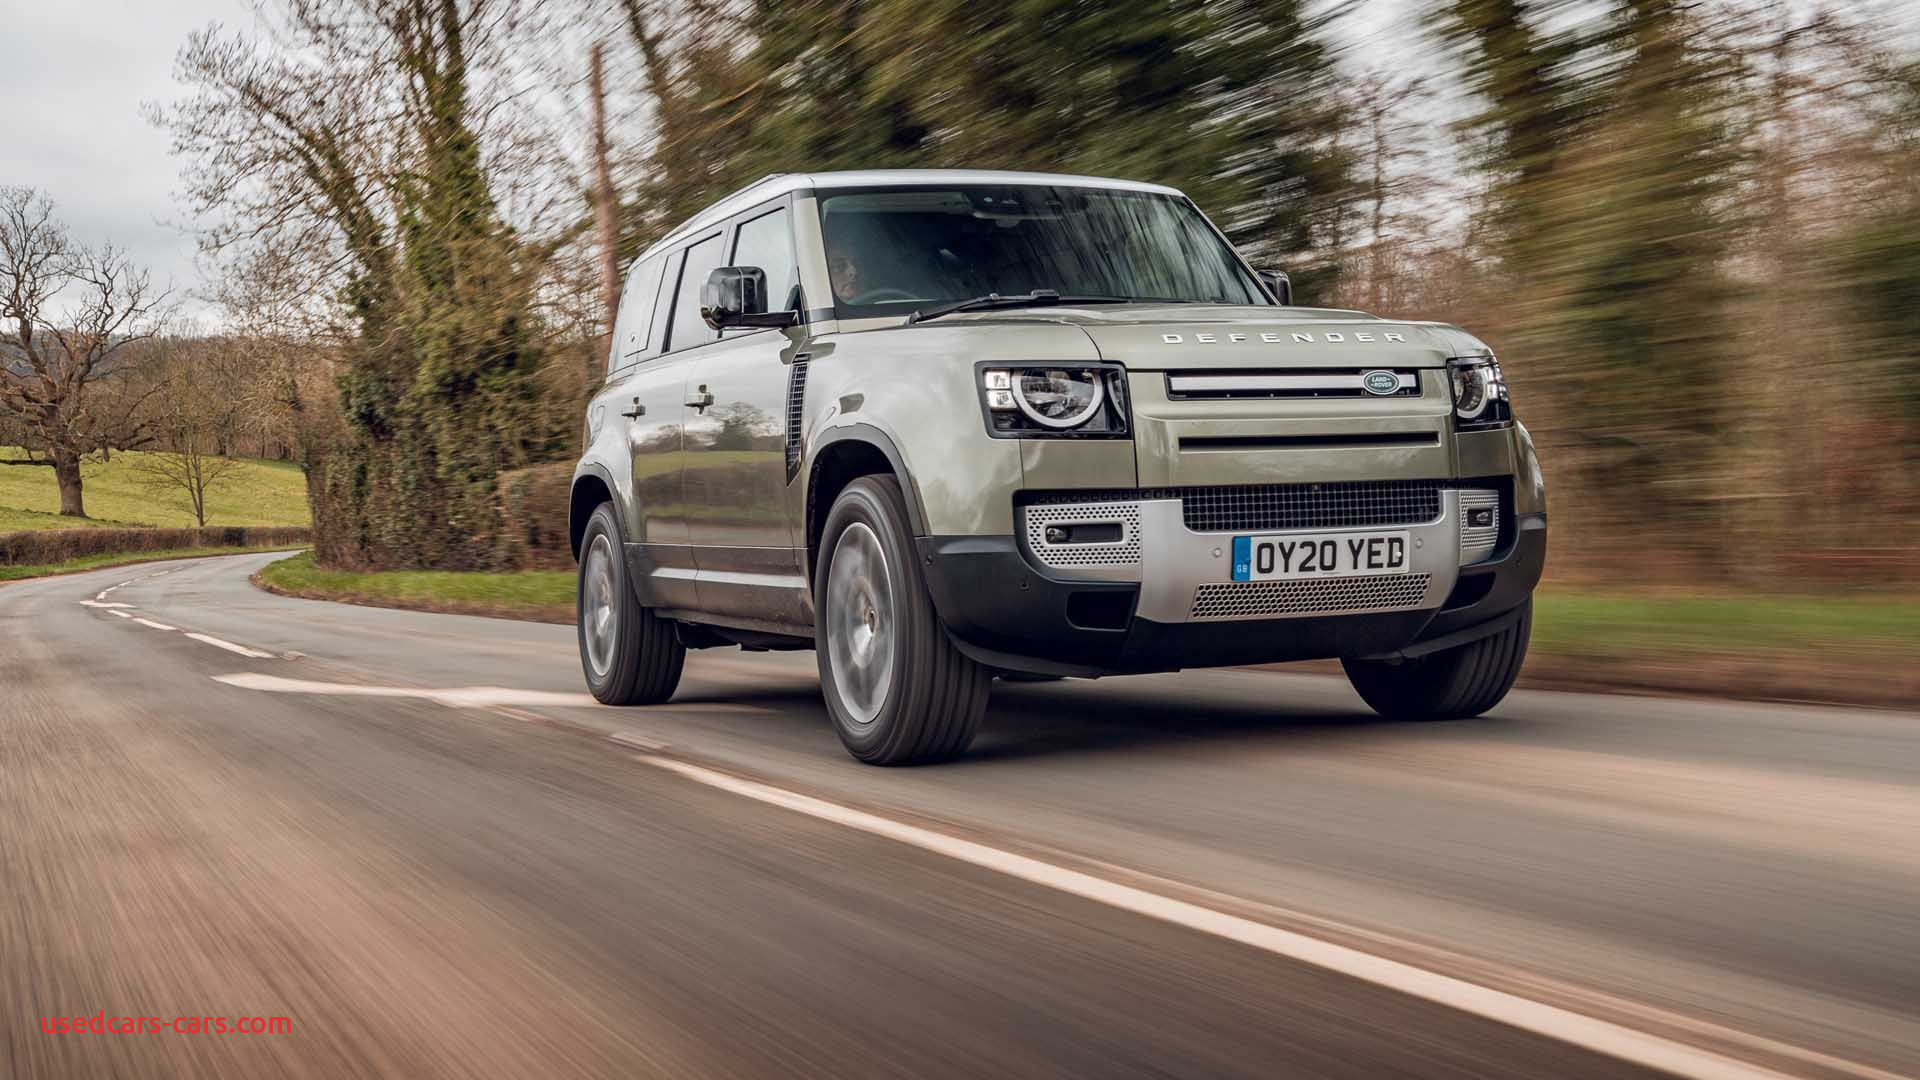 Used Cars for Sale Perth Lovely Land Rover Pickup Used Cars for Sale